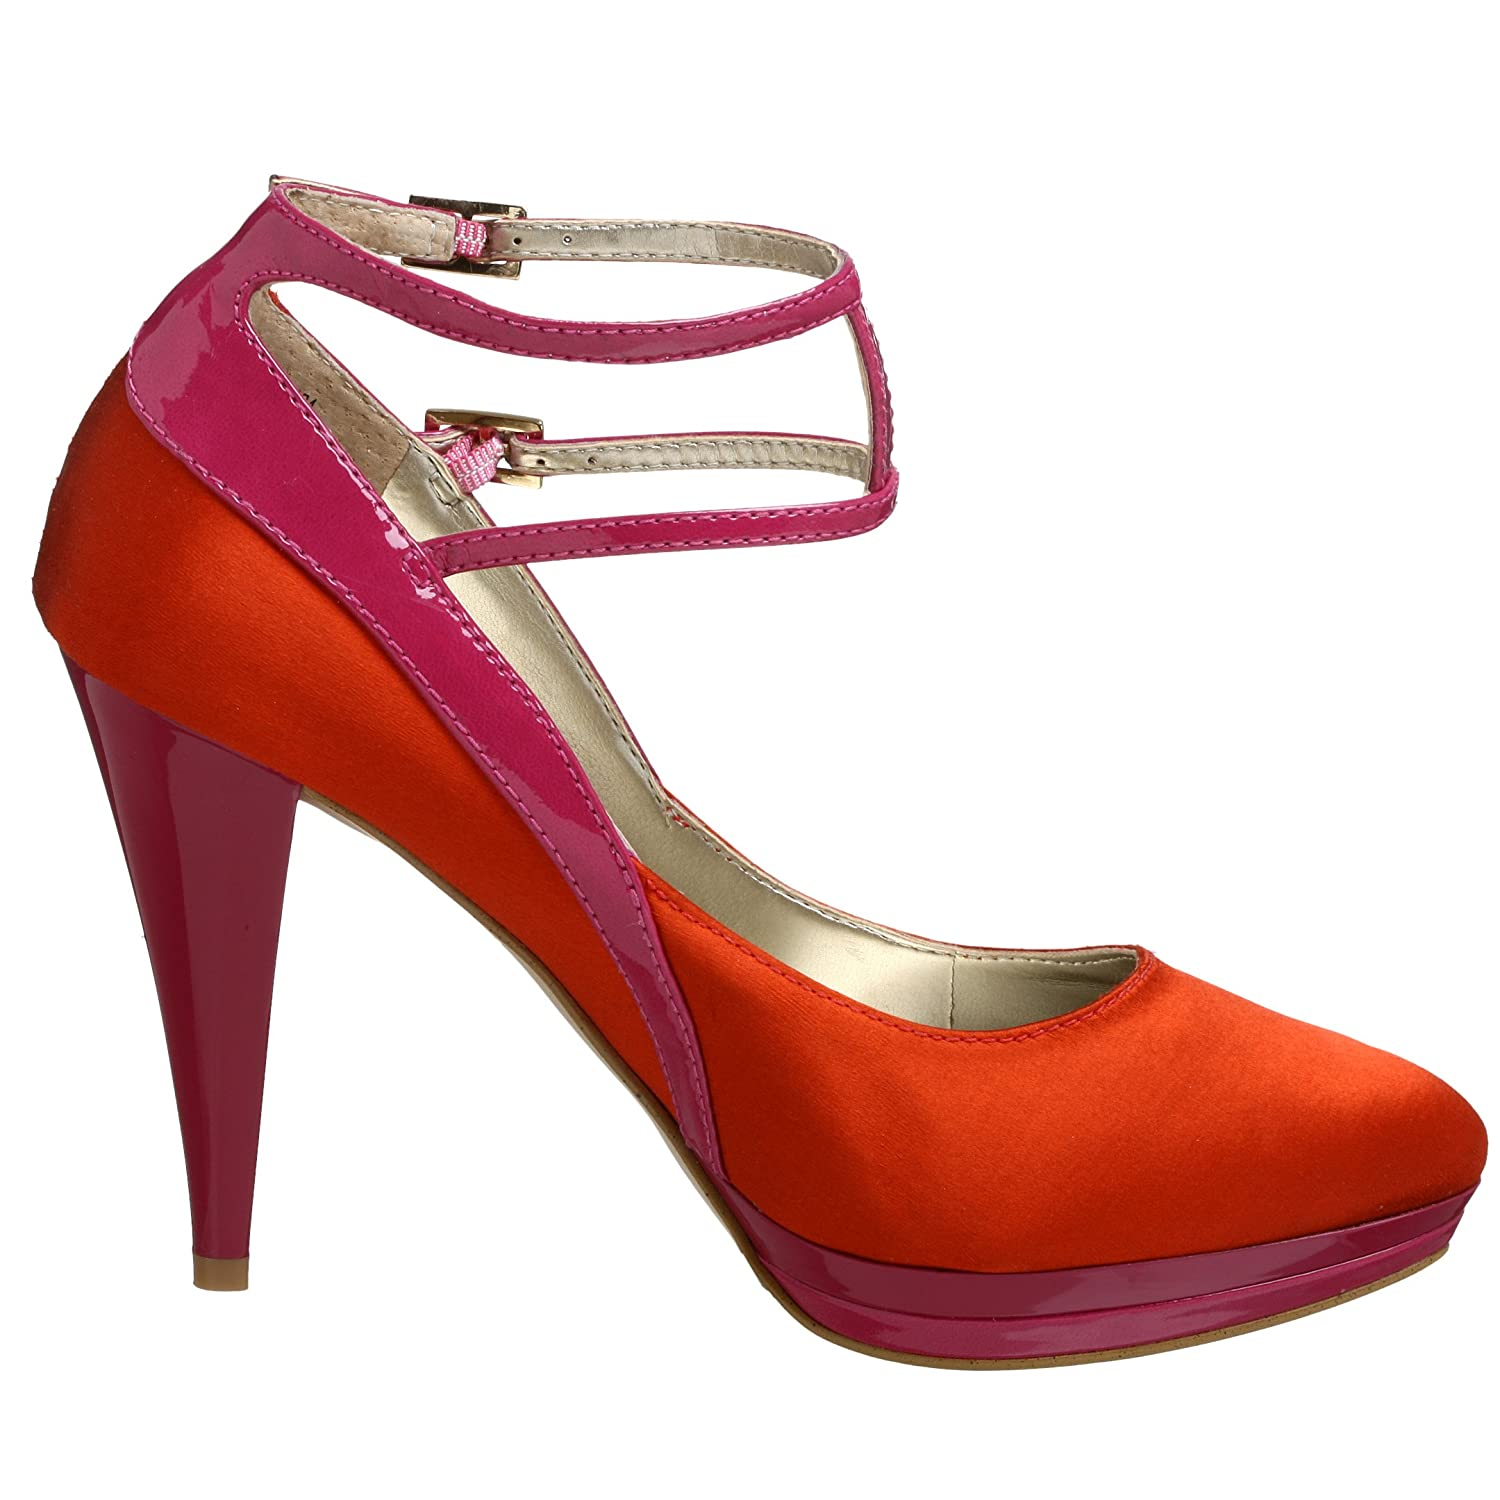 Nine West Women's Carerra Ankle Strap Platform - Free Overnight Shipping & Return Shipping: Endless.com from endless.com